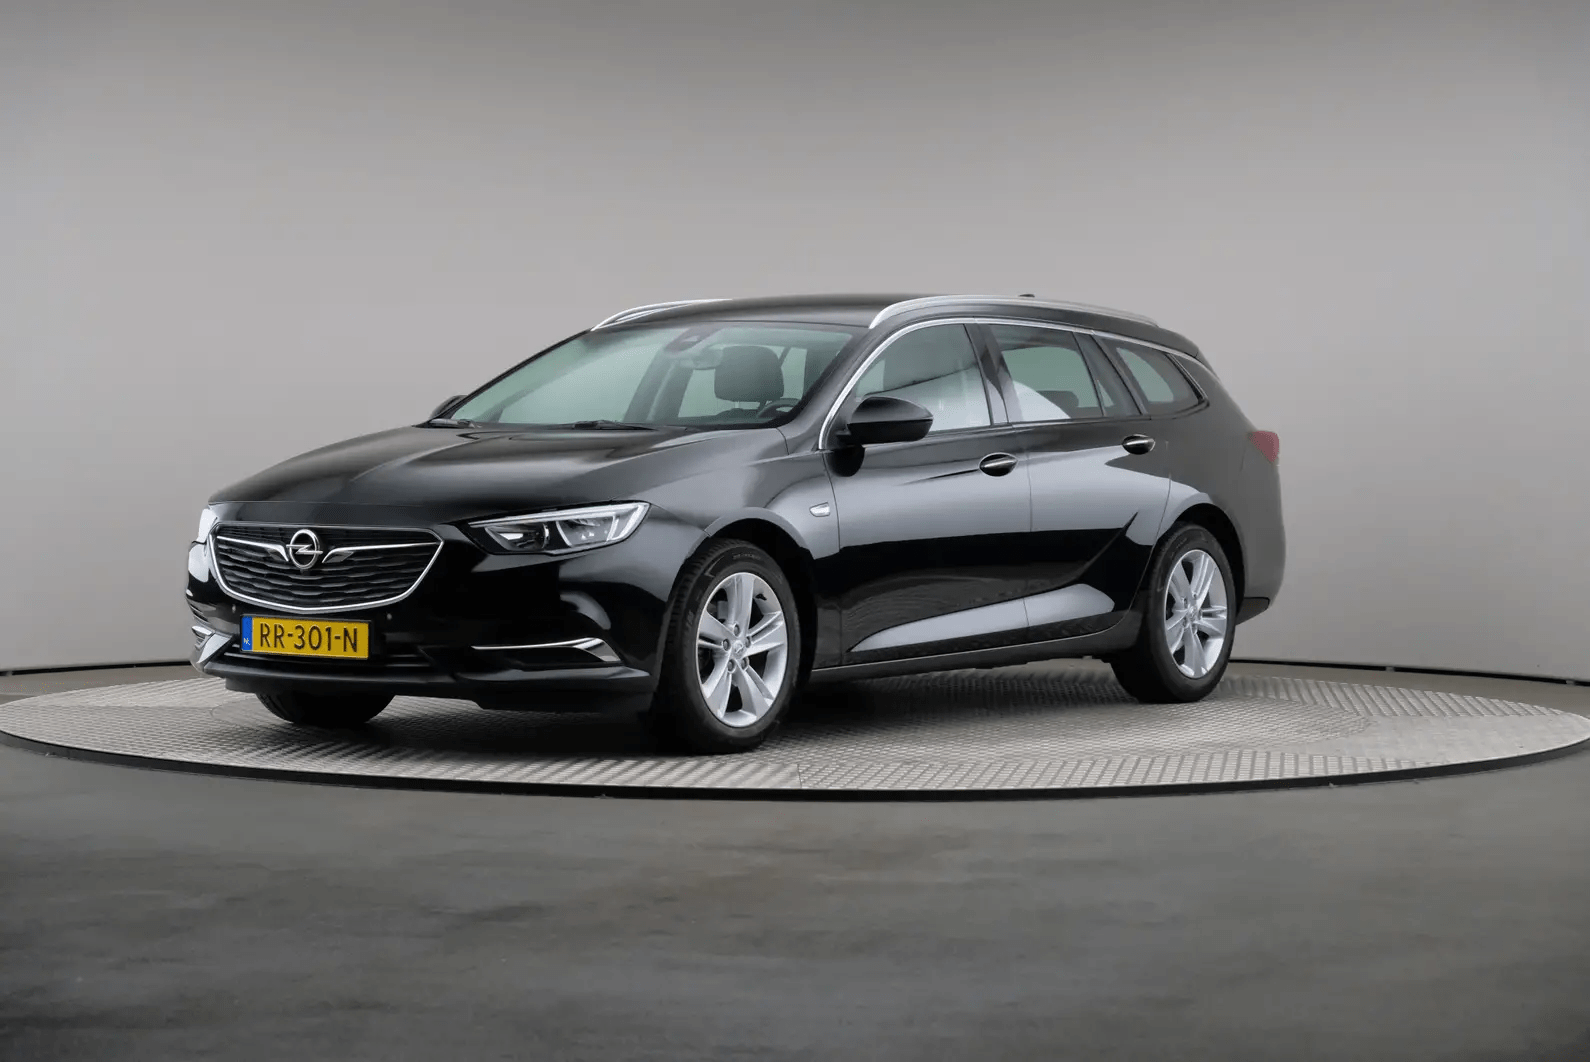 Opel Insignia Sports Tourer 1.6 CDTi 81kW Business Exec. 5d. (Kort contract, 12 maanden!)